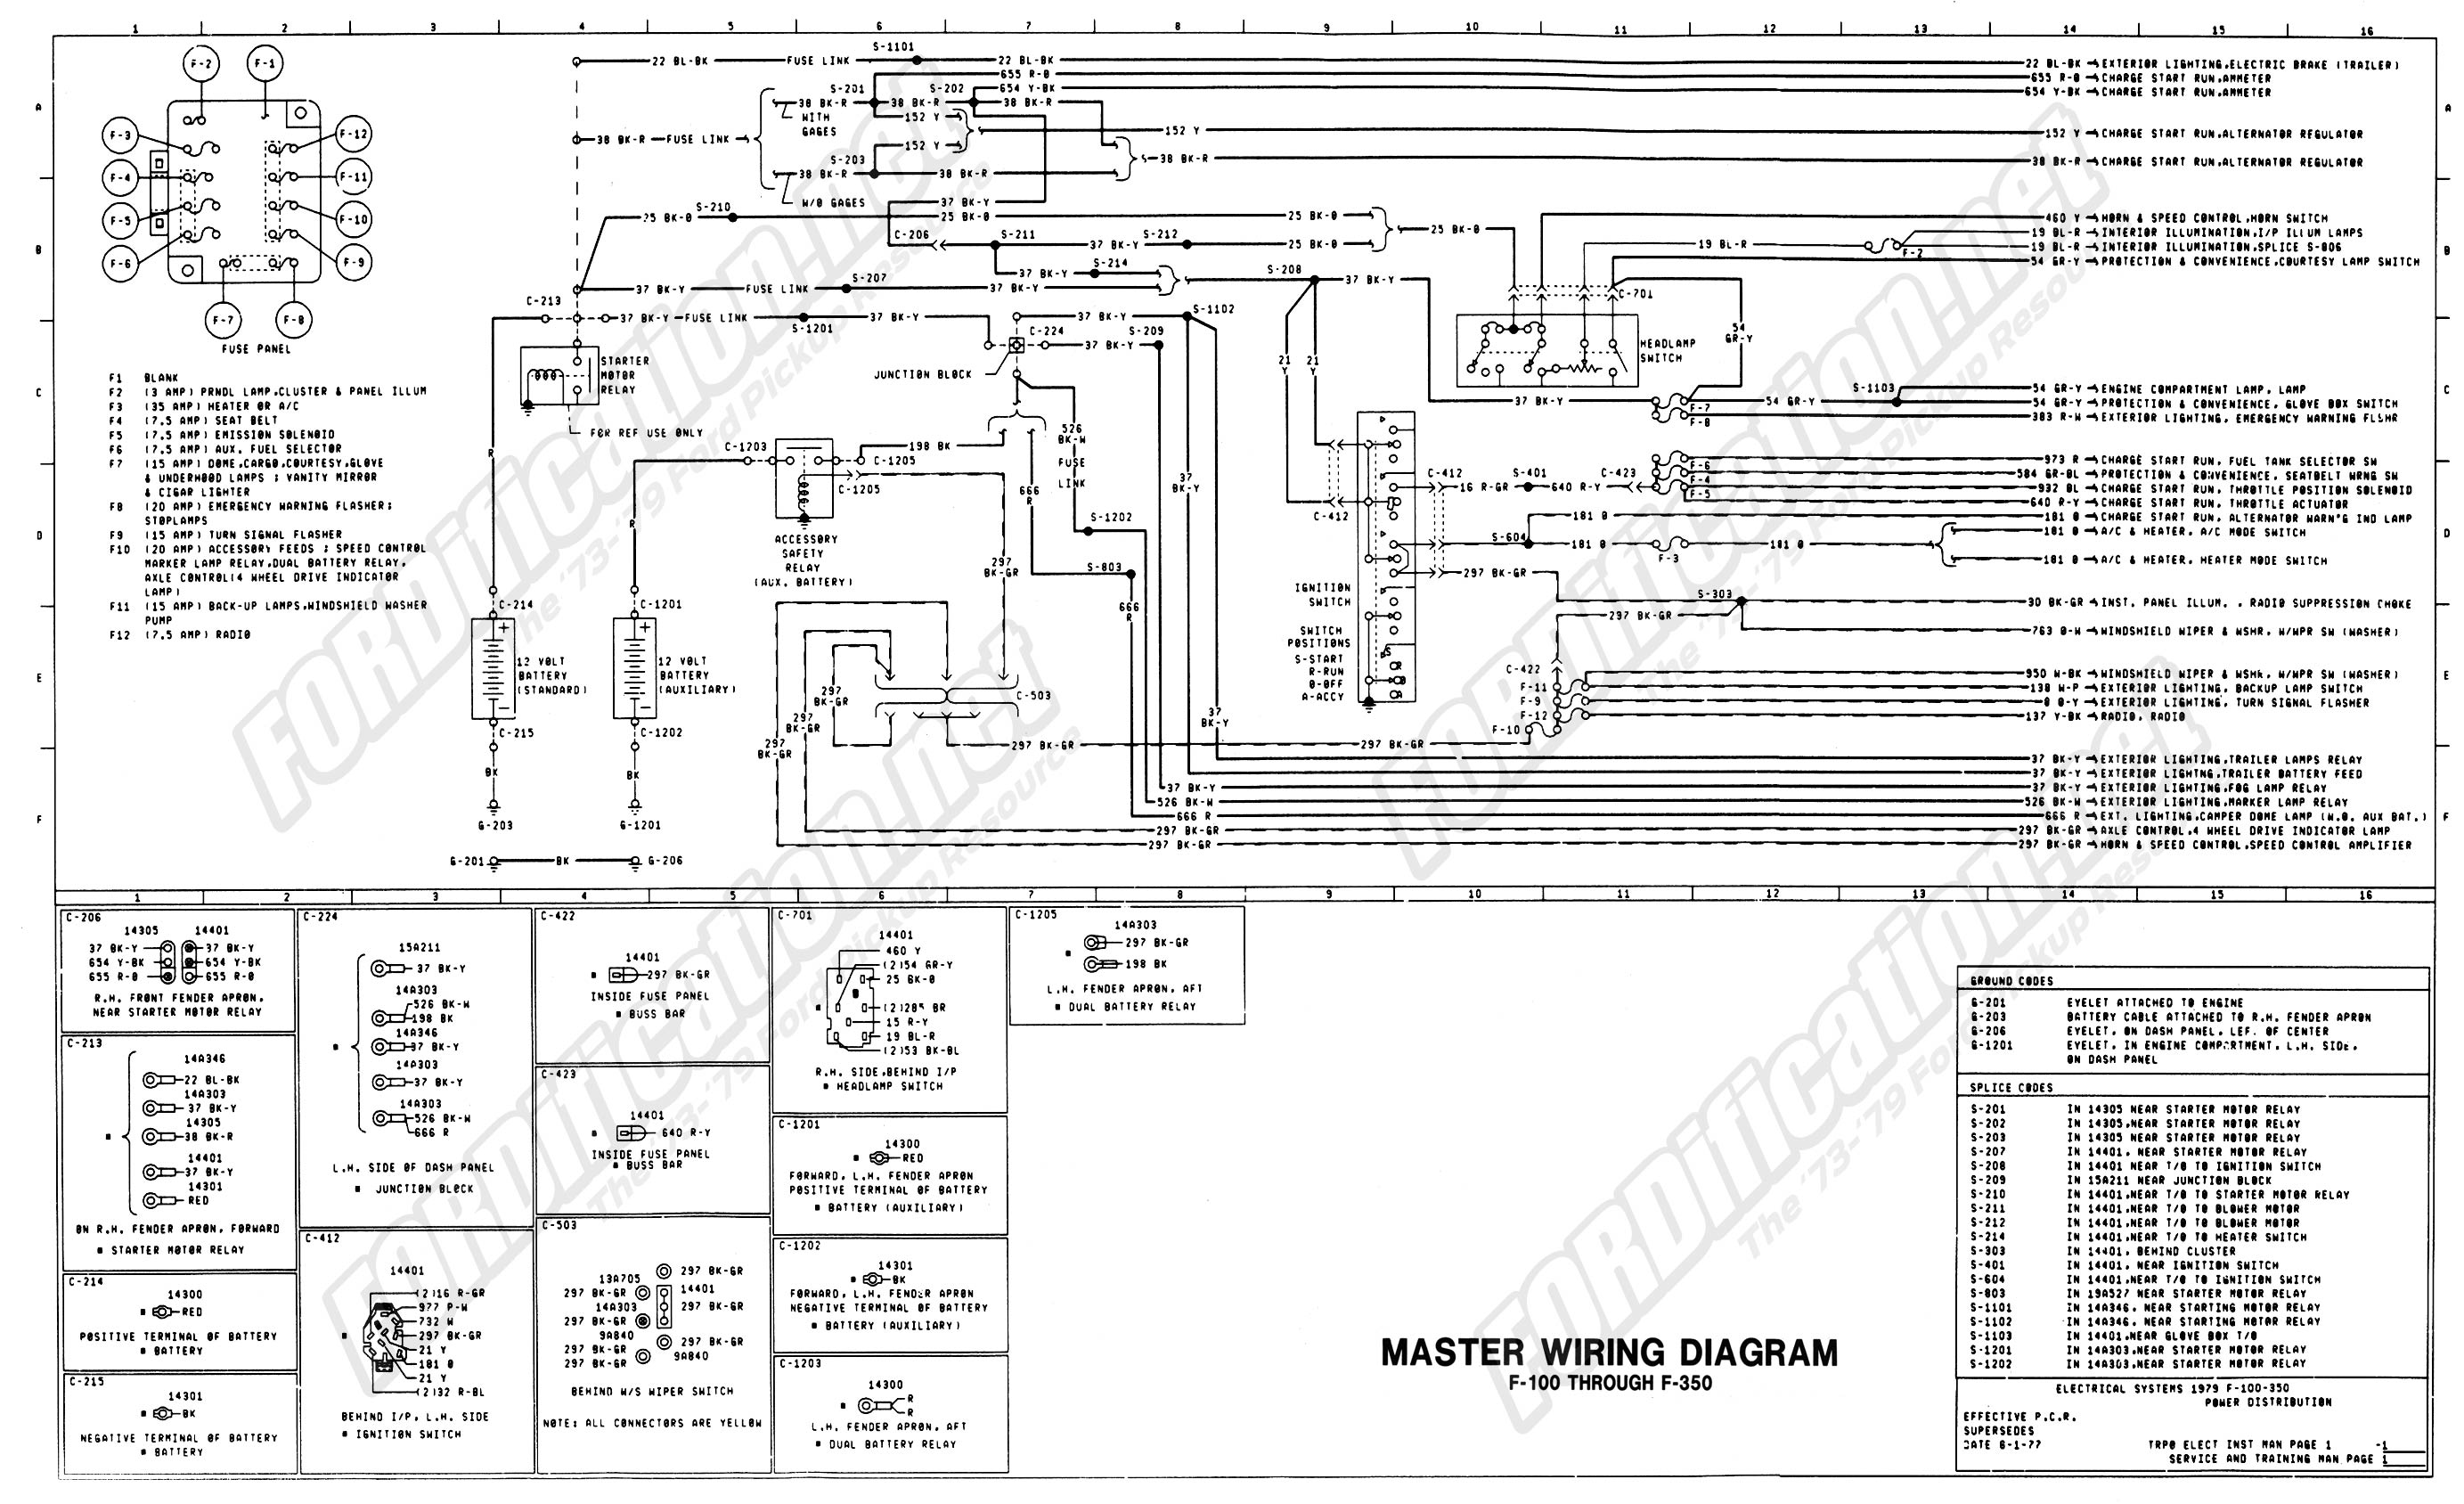 1973 1979 Ford Truck Wiring Diagrams Schematics 1977 Chevrolet Turn Signal Diagram Free Picture